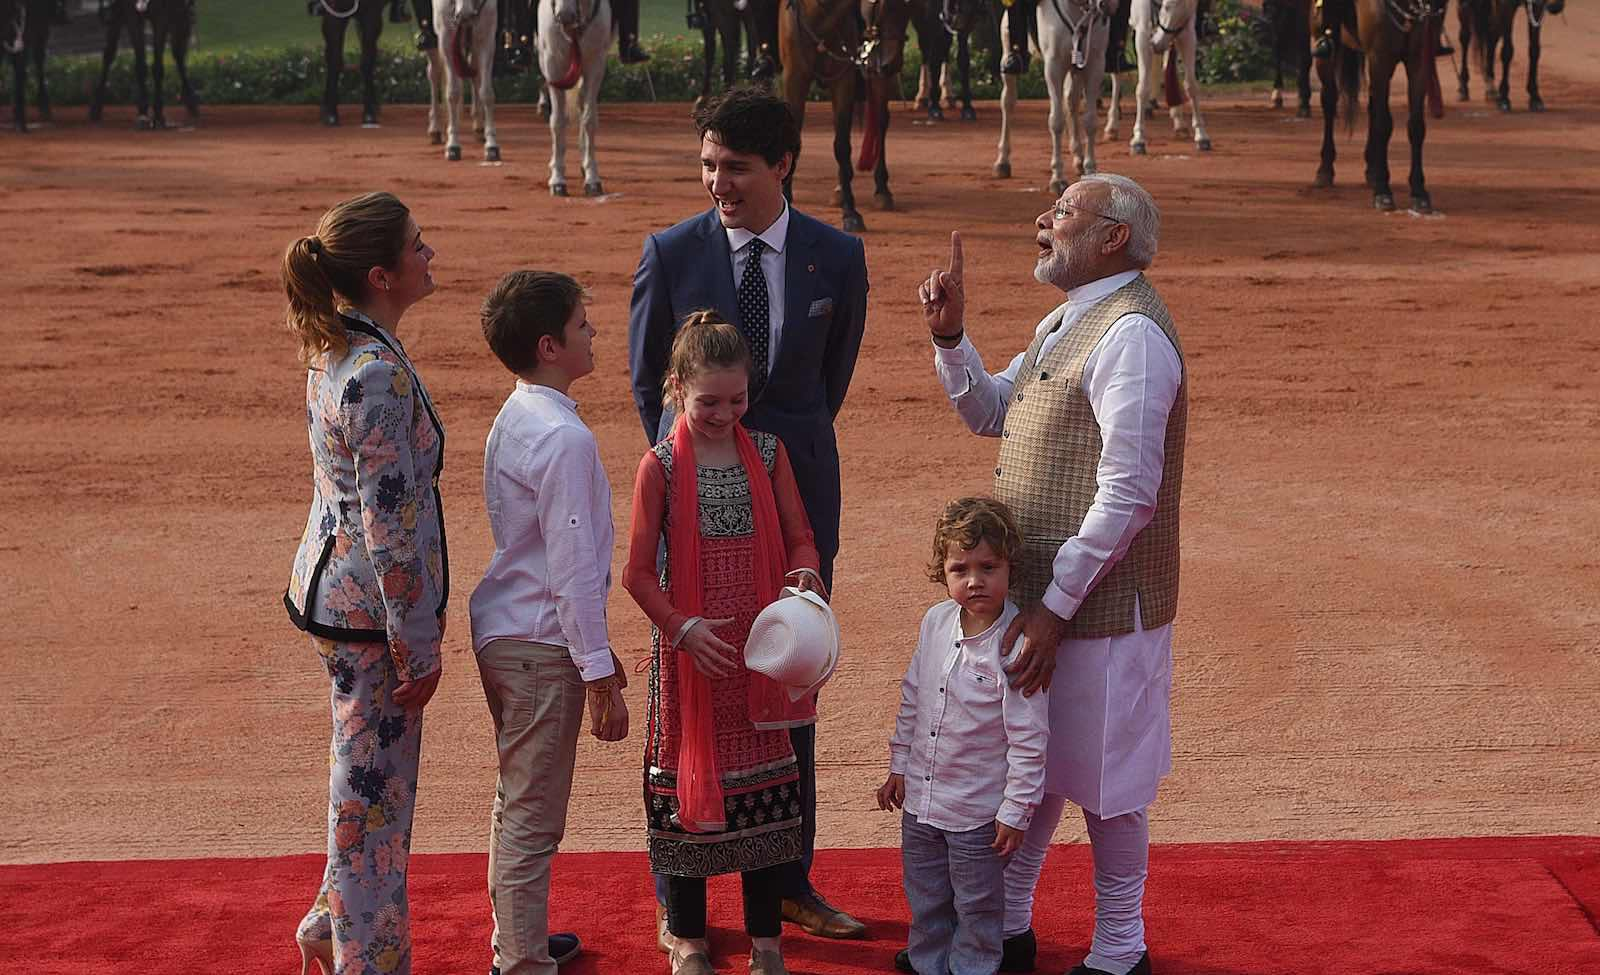 Indian Prime Minister Narendra Modi (right) welcoming Canadian Prime Minister Justin Trudeau and his family in New Delhi, 23 February 2018 (Vipin Kumar/Hindustan Times via Getty Images)